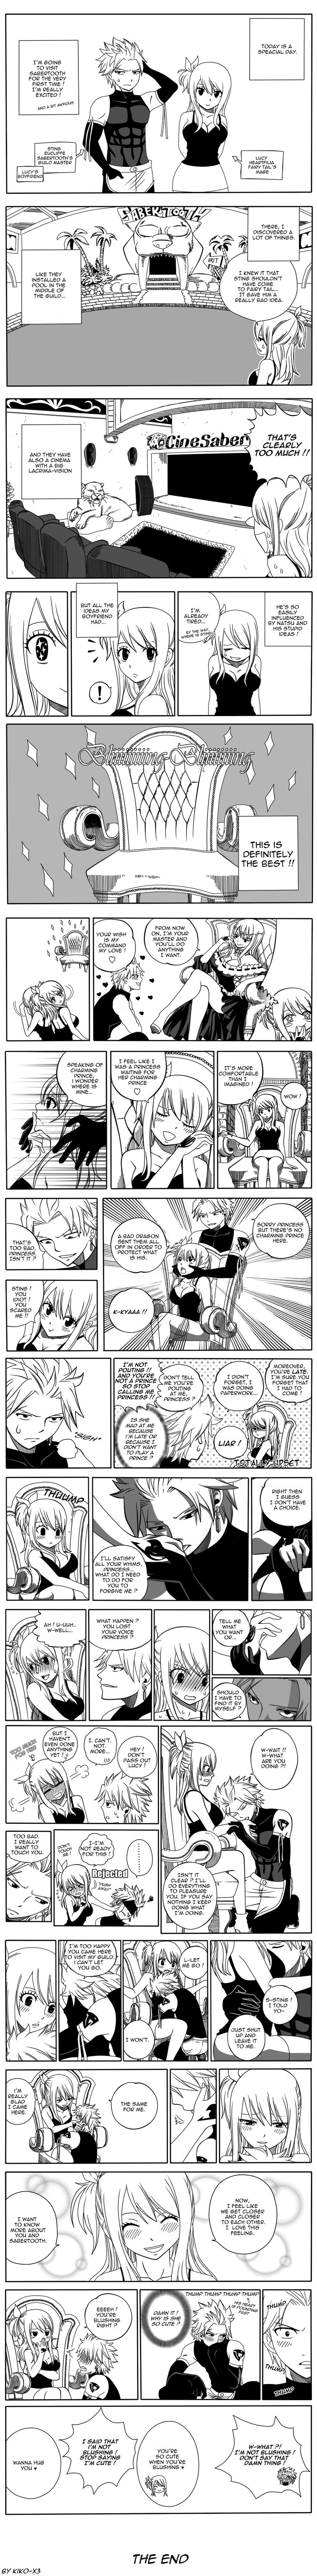 Special day, Lucy visits Sabertooth [Sting x Lucy] by Kiko-x3.deviantart.com on @DeviantArt